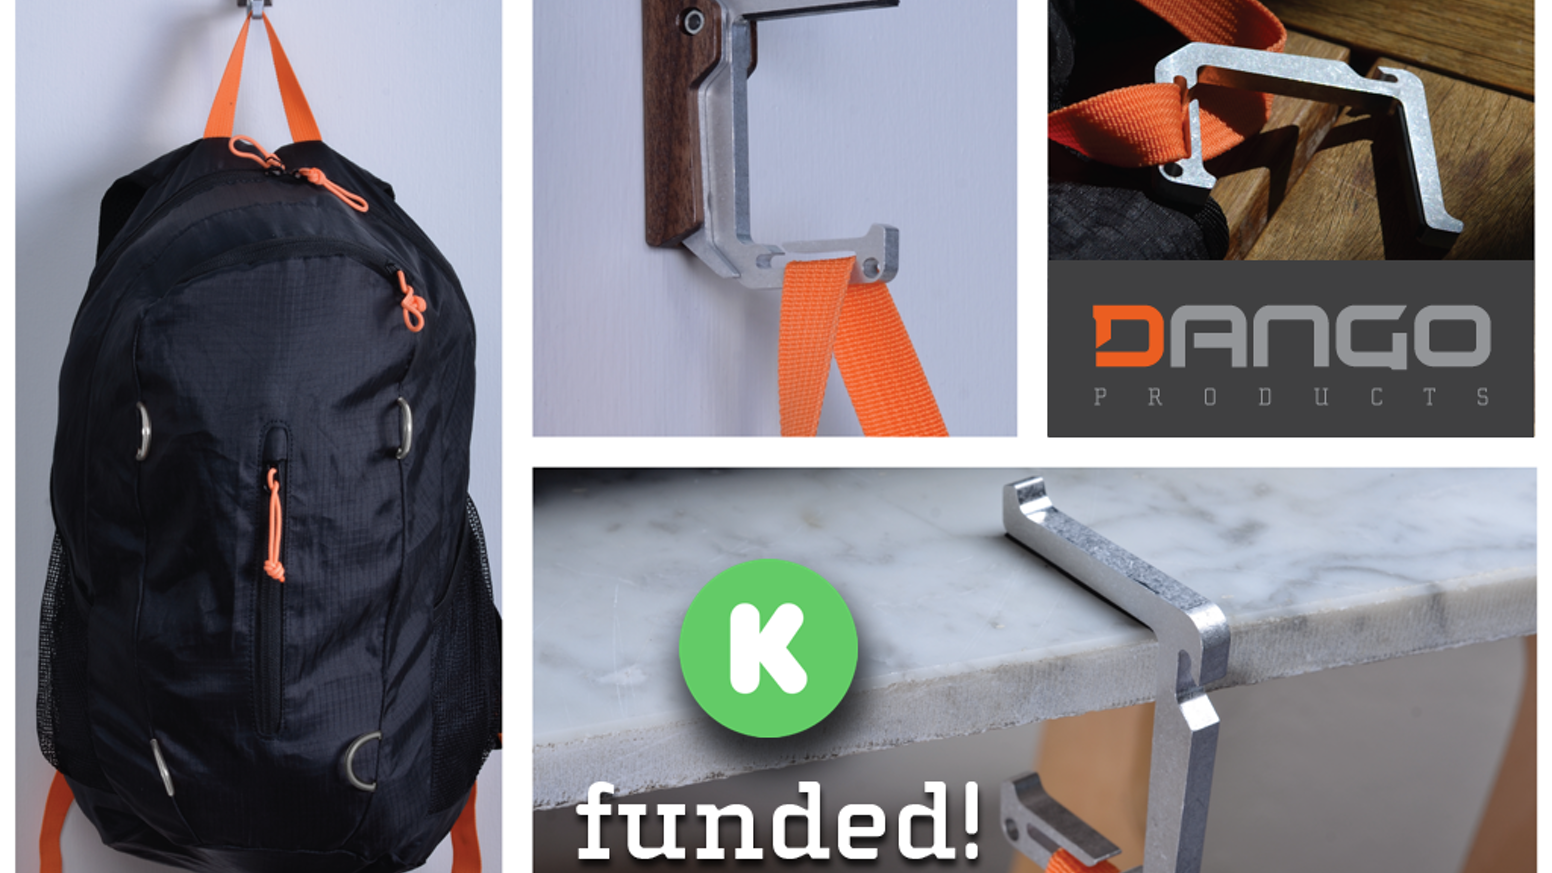 Dango Products was created to suit the needs of an active lifestyle- with industrial design. .